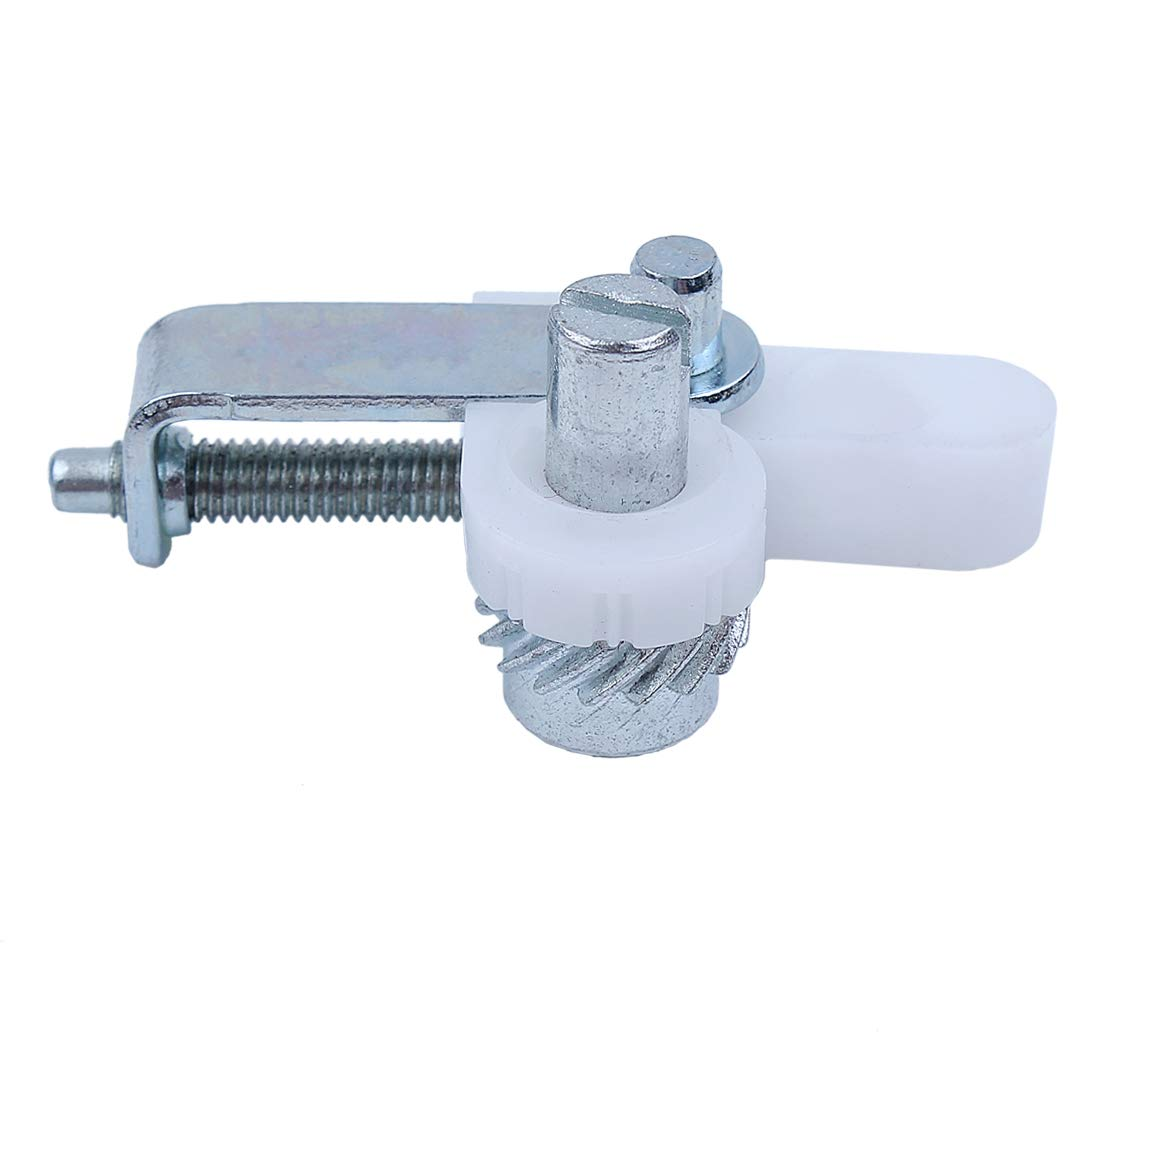 Chain Tensioner Adjuster For Stihl 021 MS210 023 MS230 025 MS250 #1123 007 1000